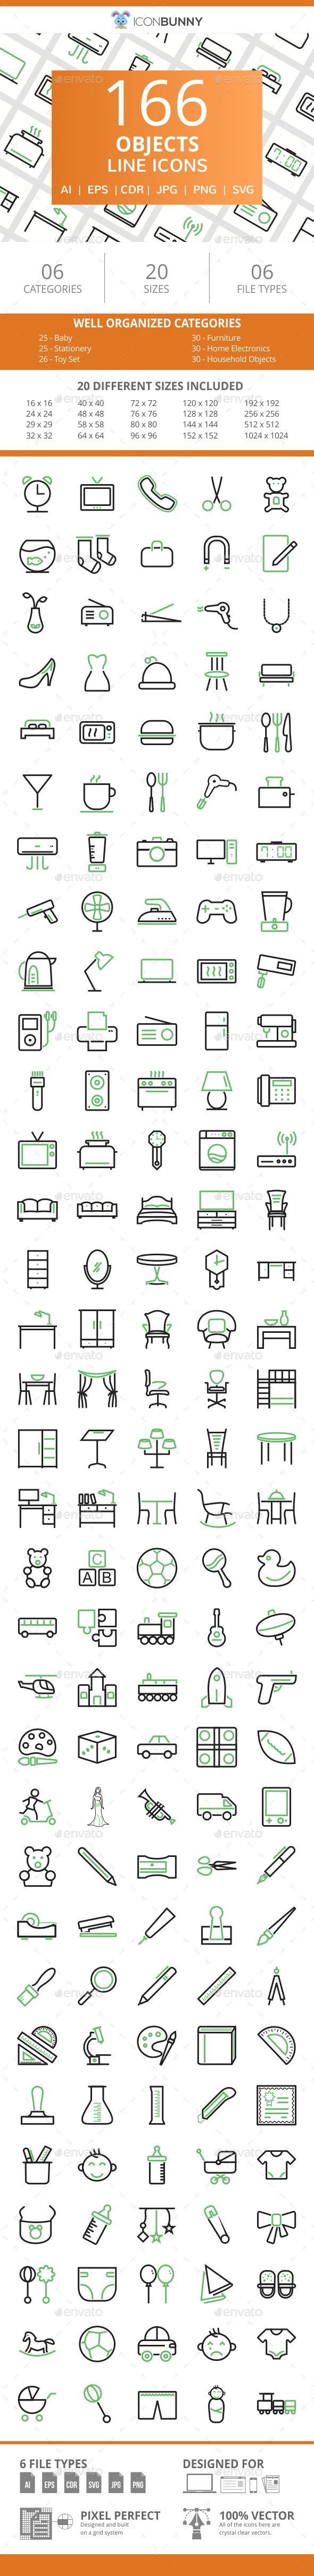 166 Objects Line Green & Black Icons - Icons